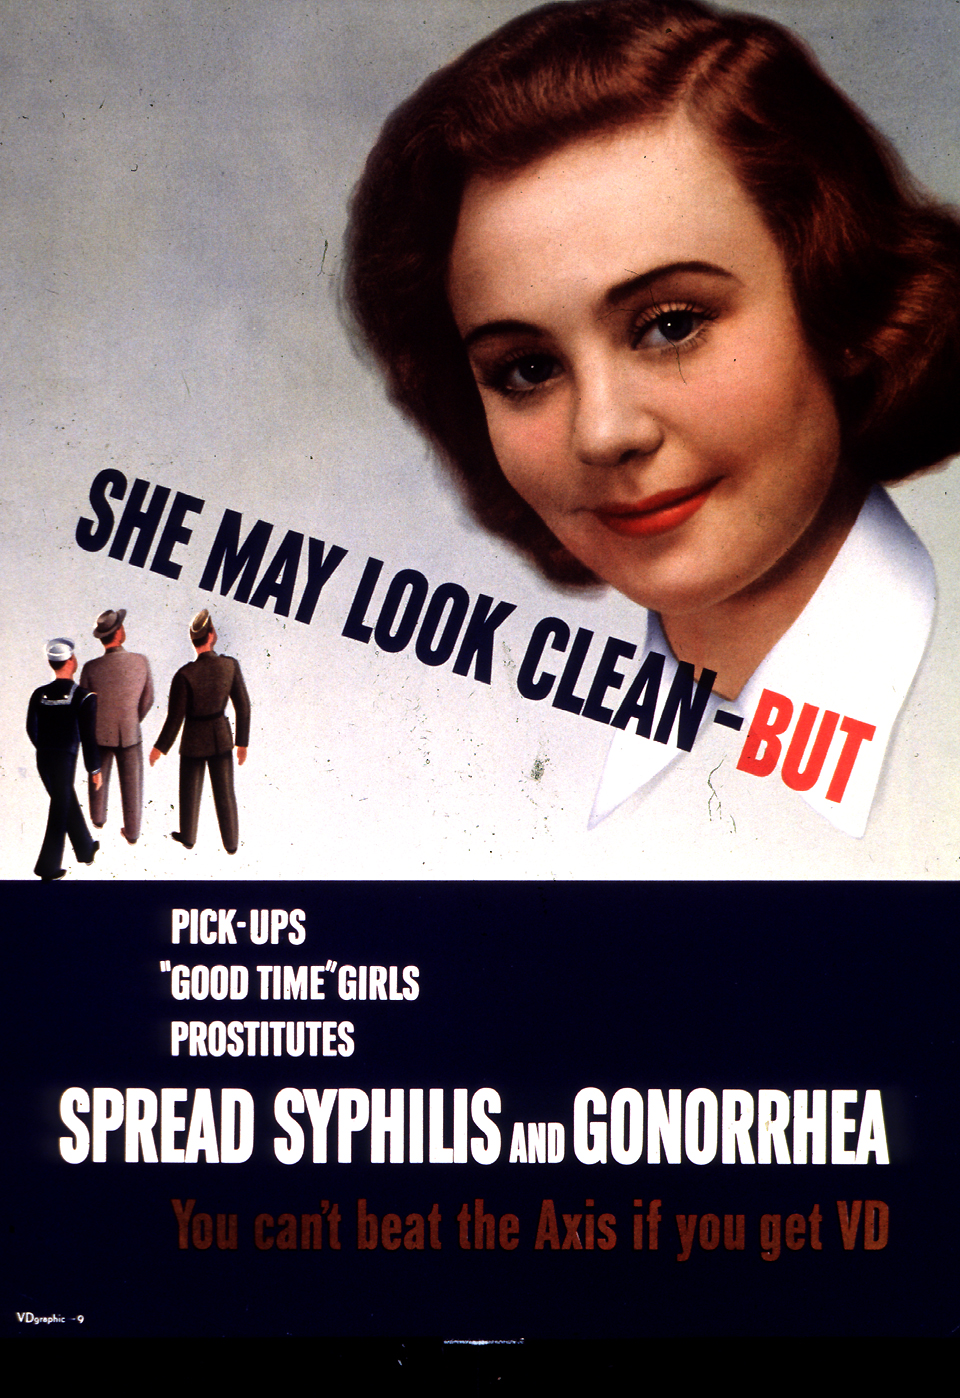 She May Look Clean - But Pick-ups 'Good Time' Girls Prostitutes Spread Syphilis and Gonorrhea